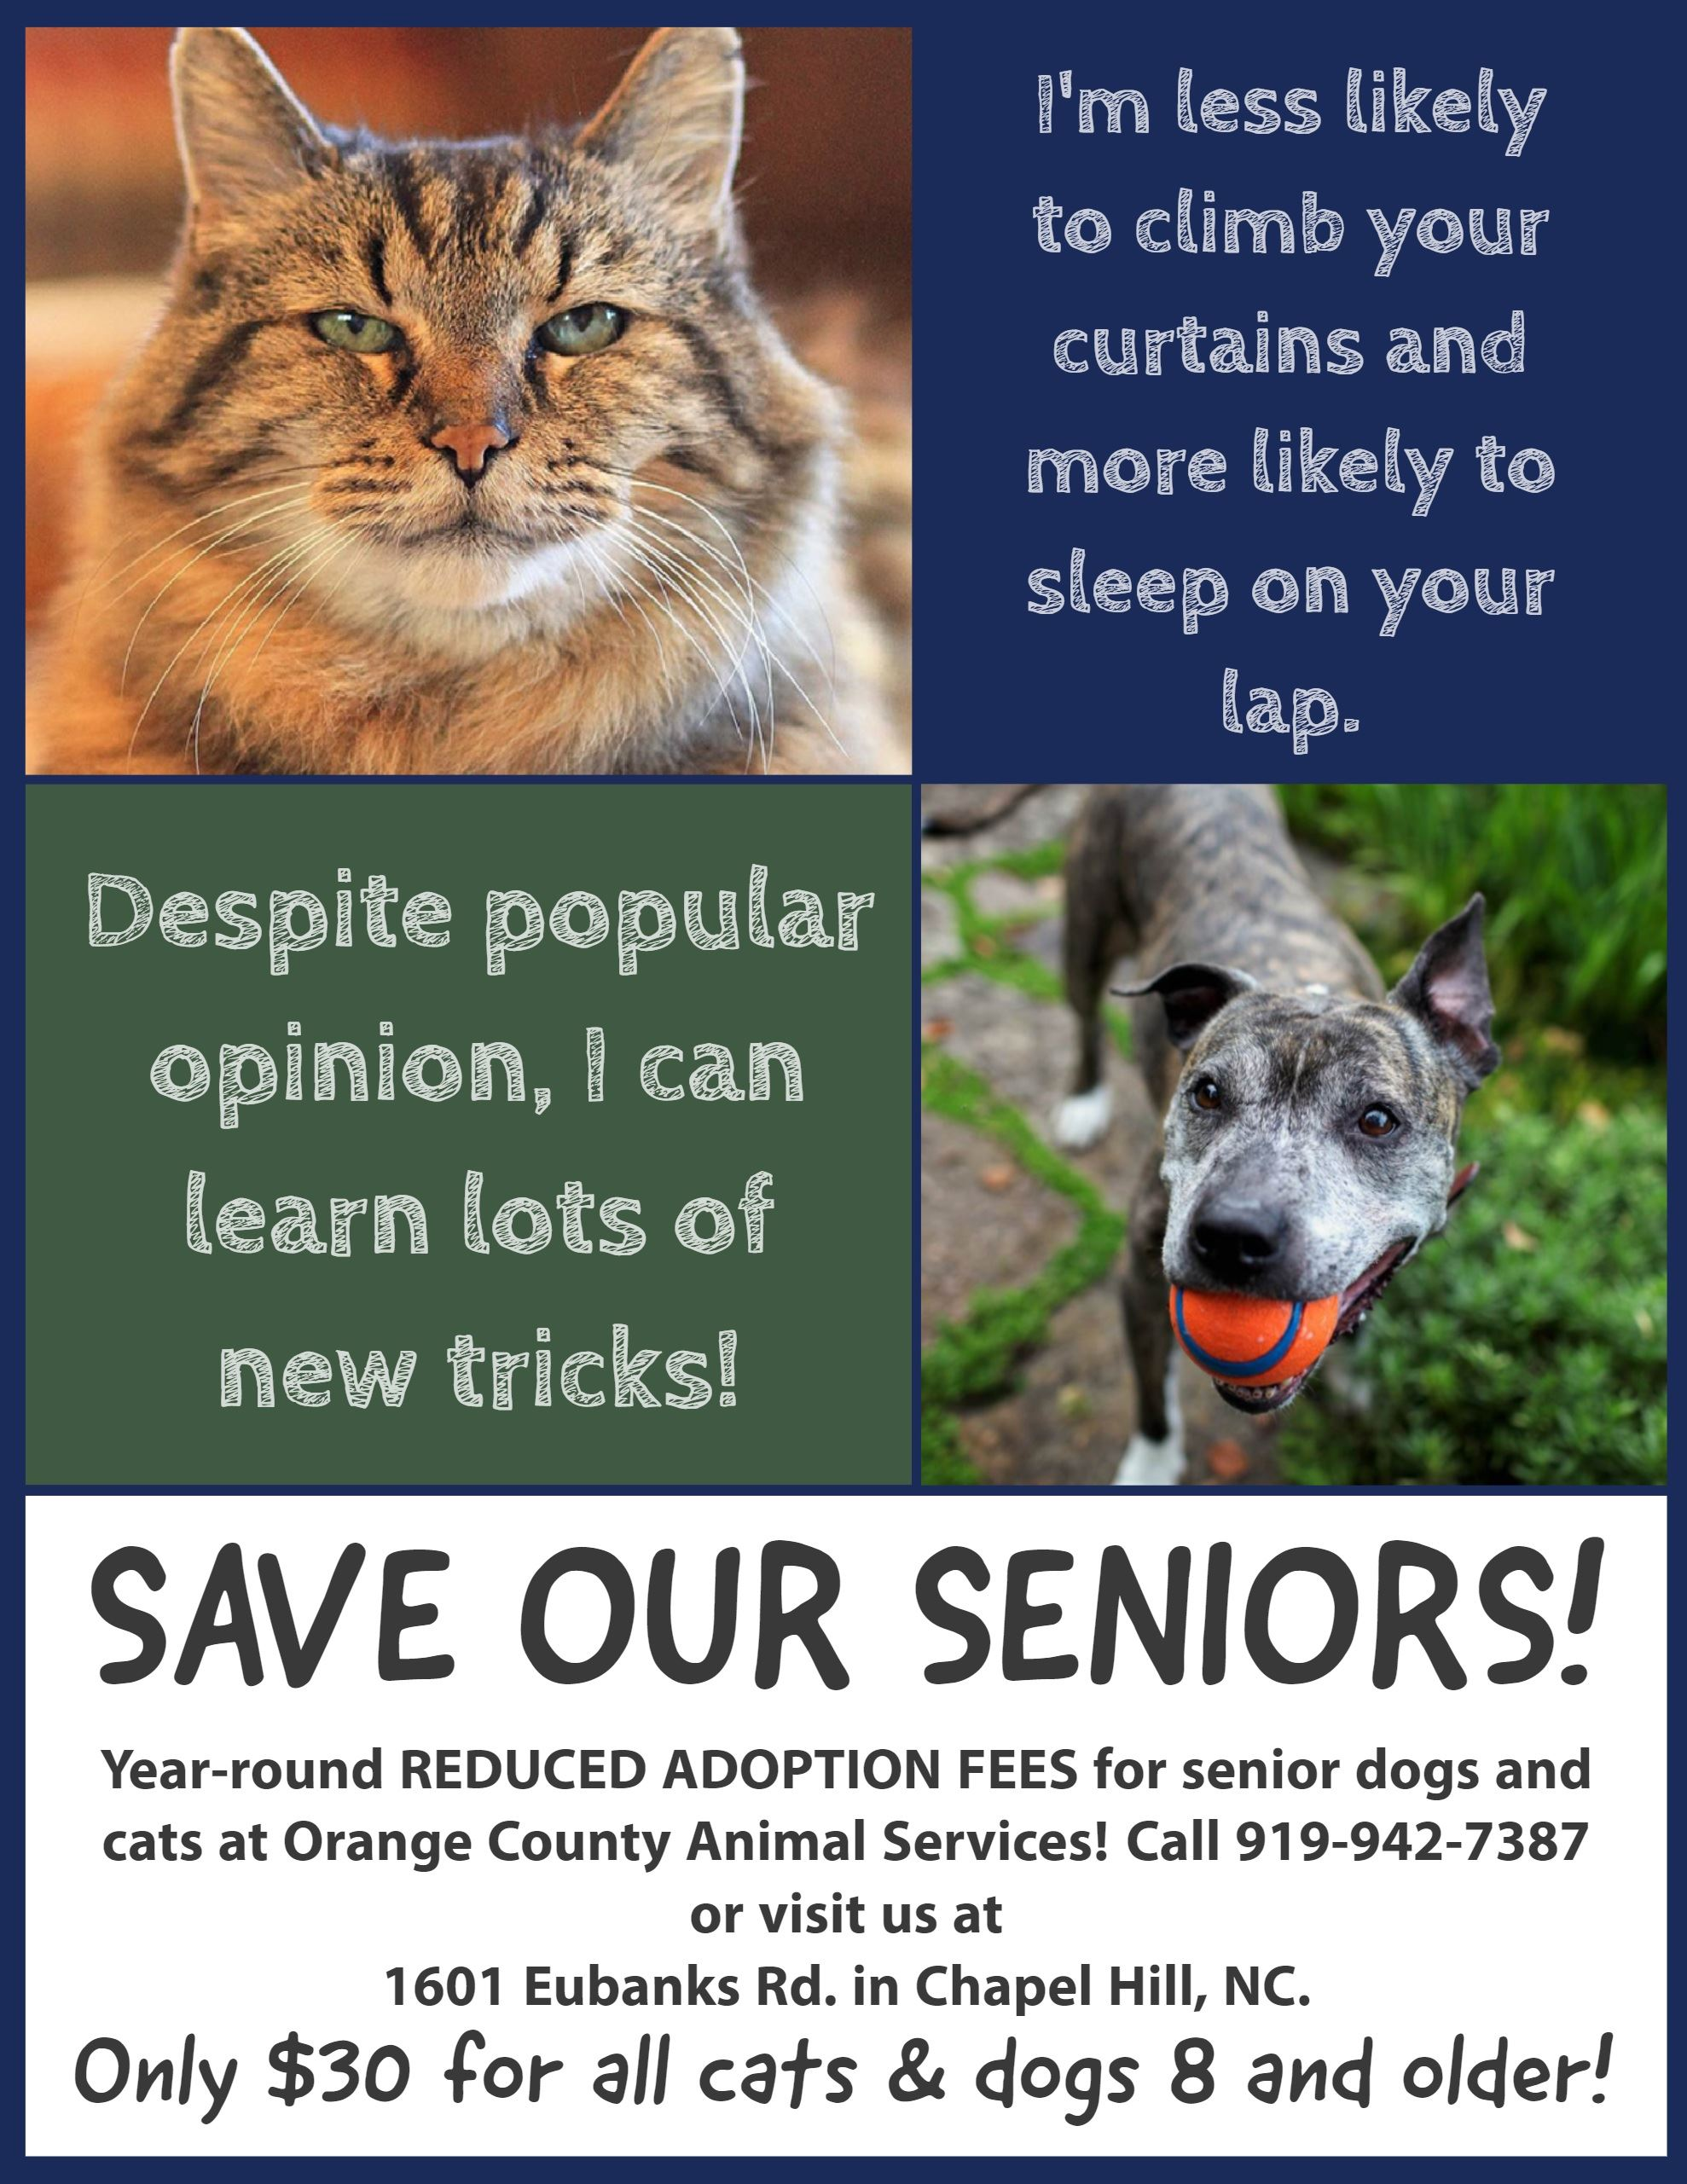 SaveOurSeniors